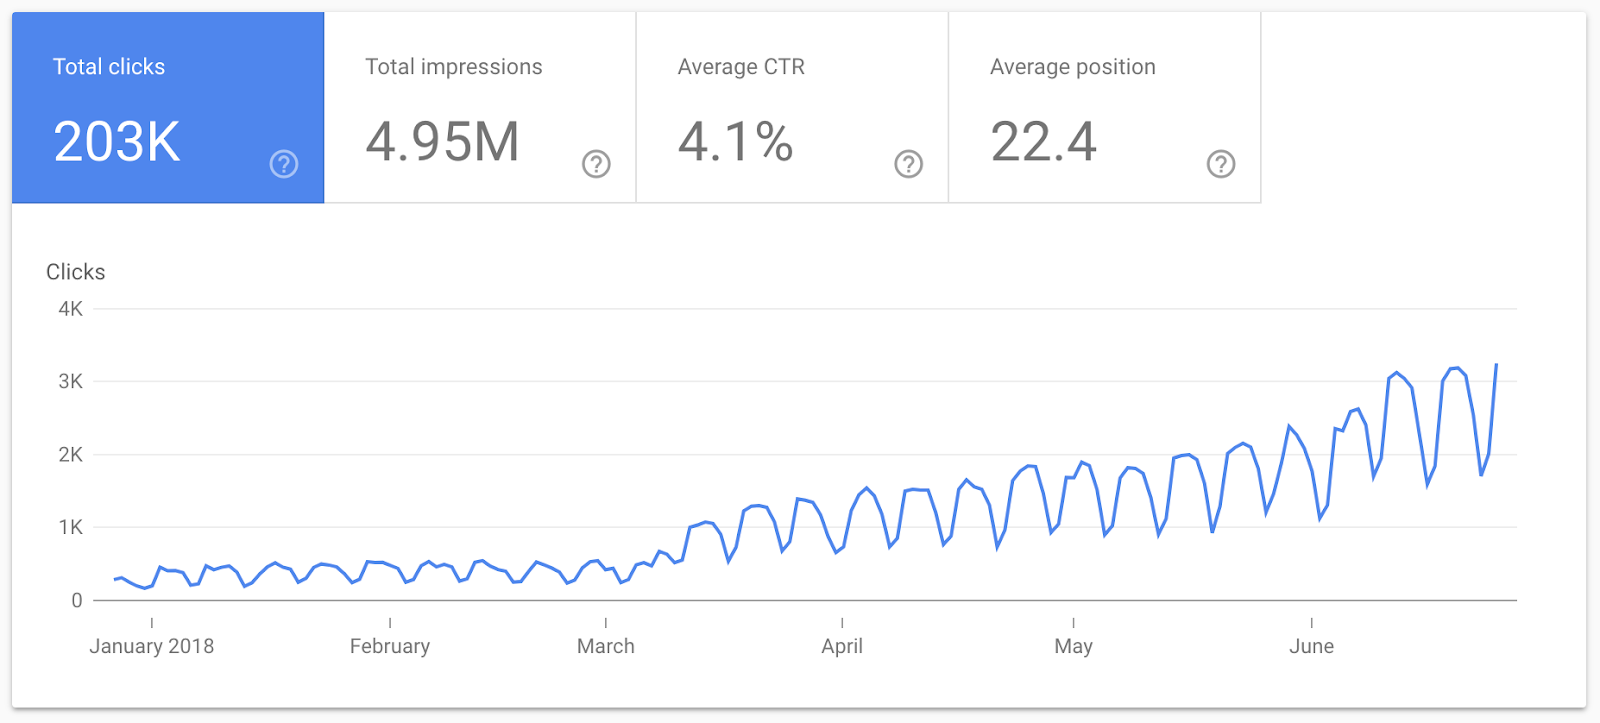 Line graph from Kisi's Google Search console showing total clicks growing from under 1K in January 2018 to over 3K in June 2018